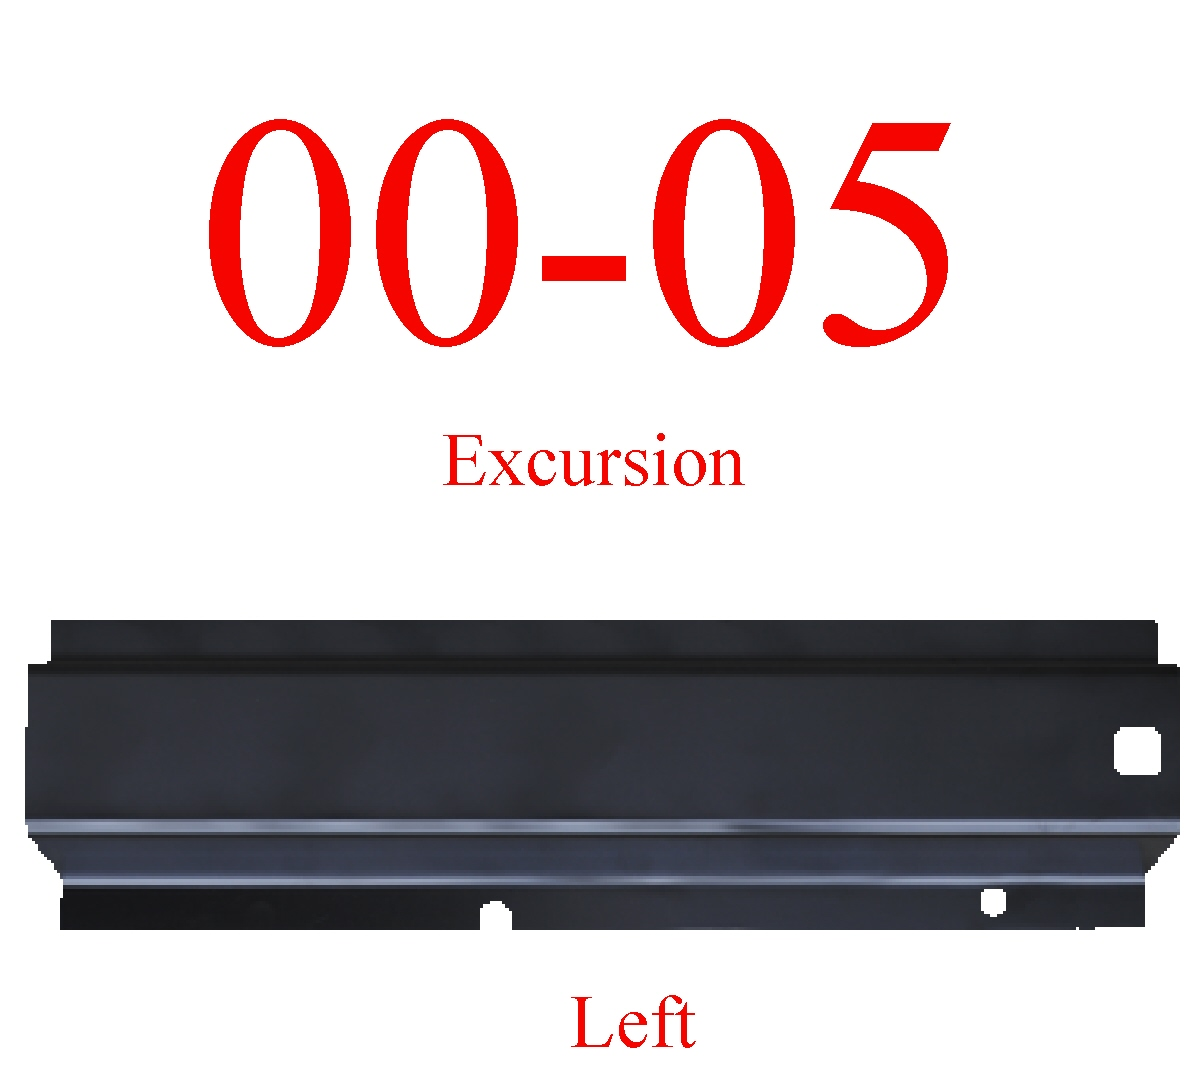 00-05 Excursion Left Rear Rocker Panel